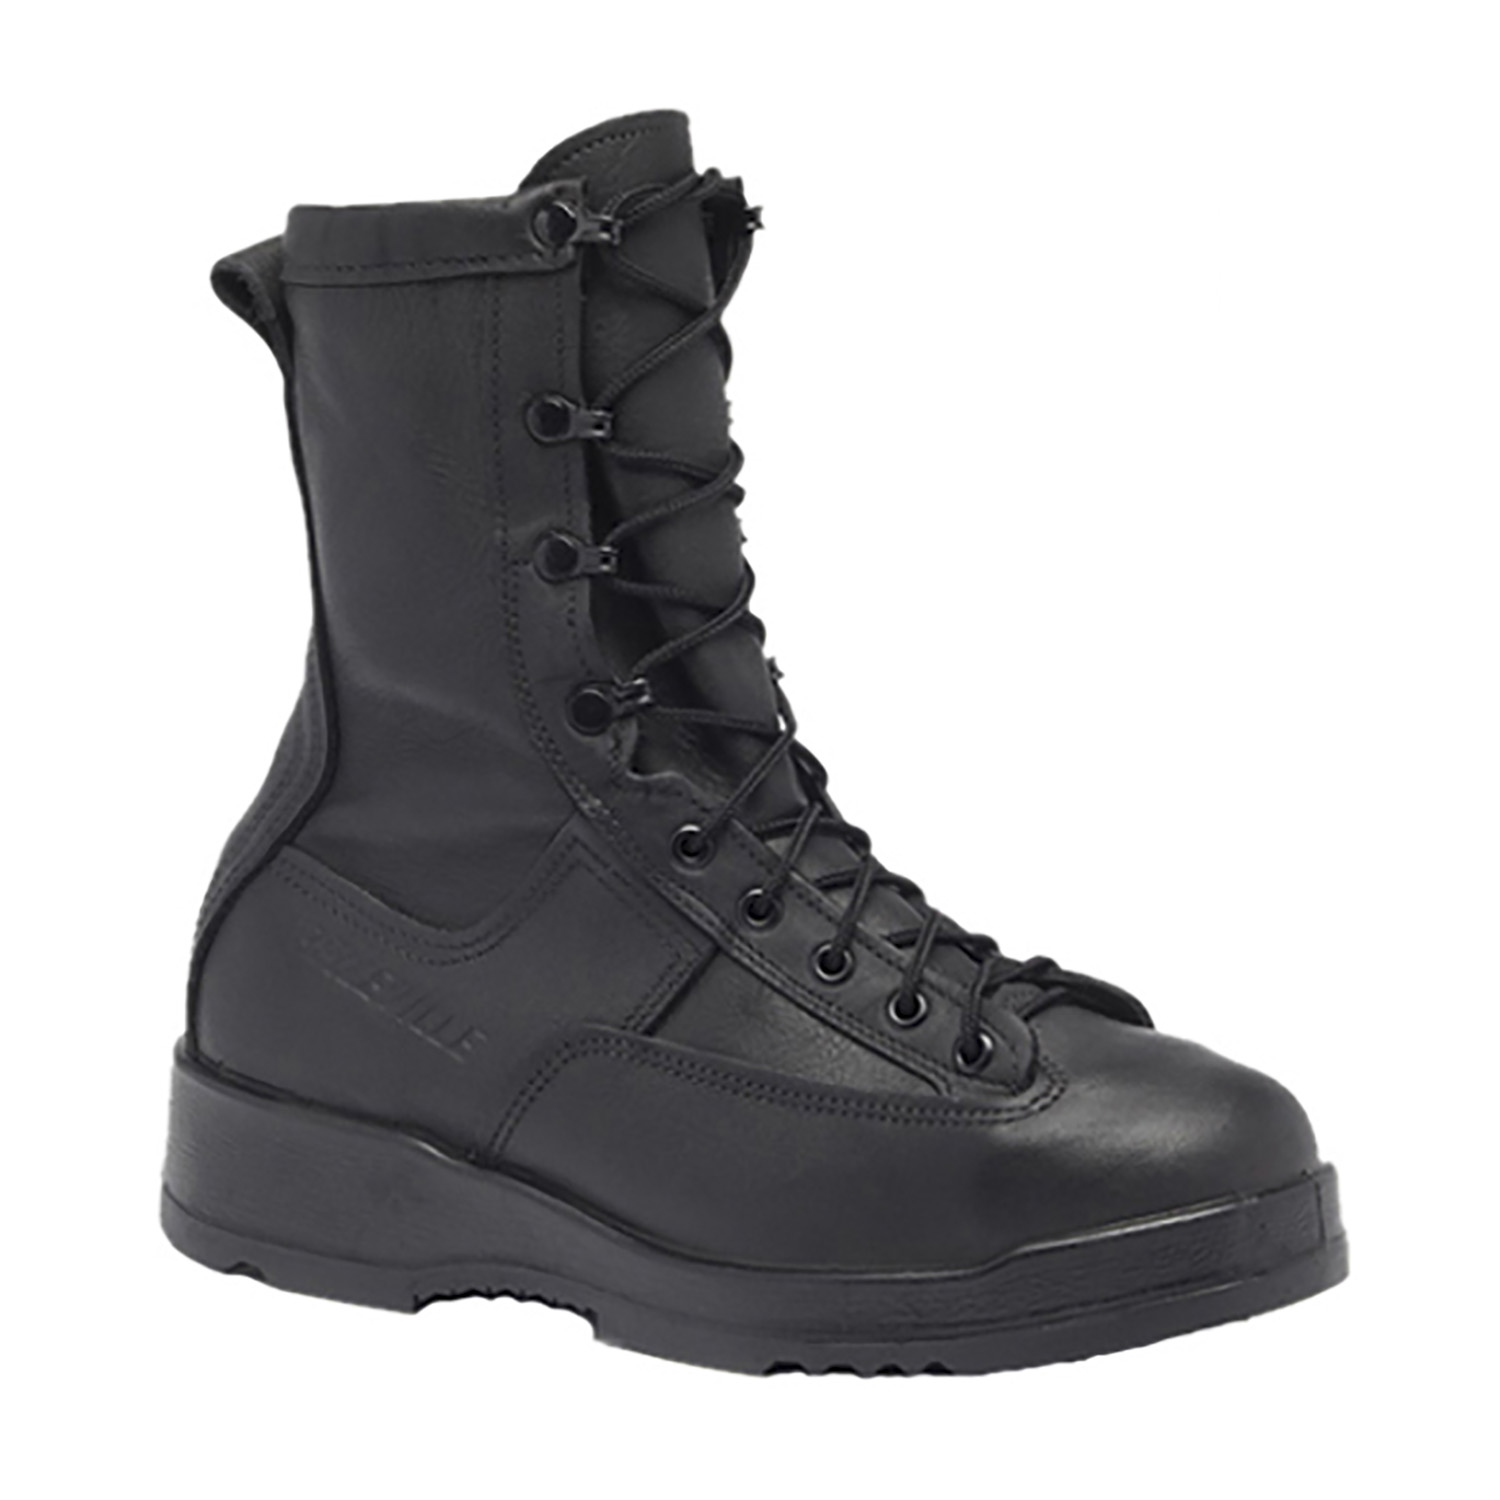 Belleville Waterproof Steel Toe Flight and Flight Deck Boots